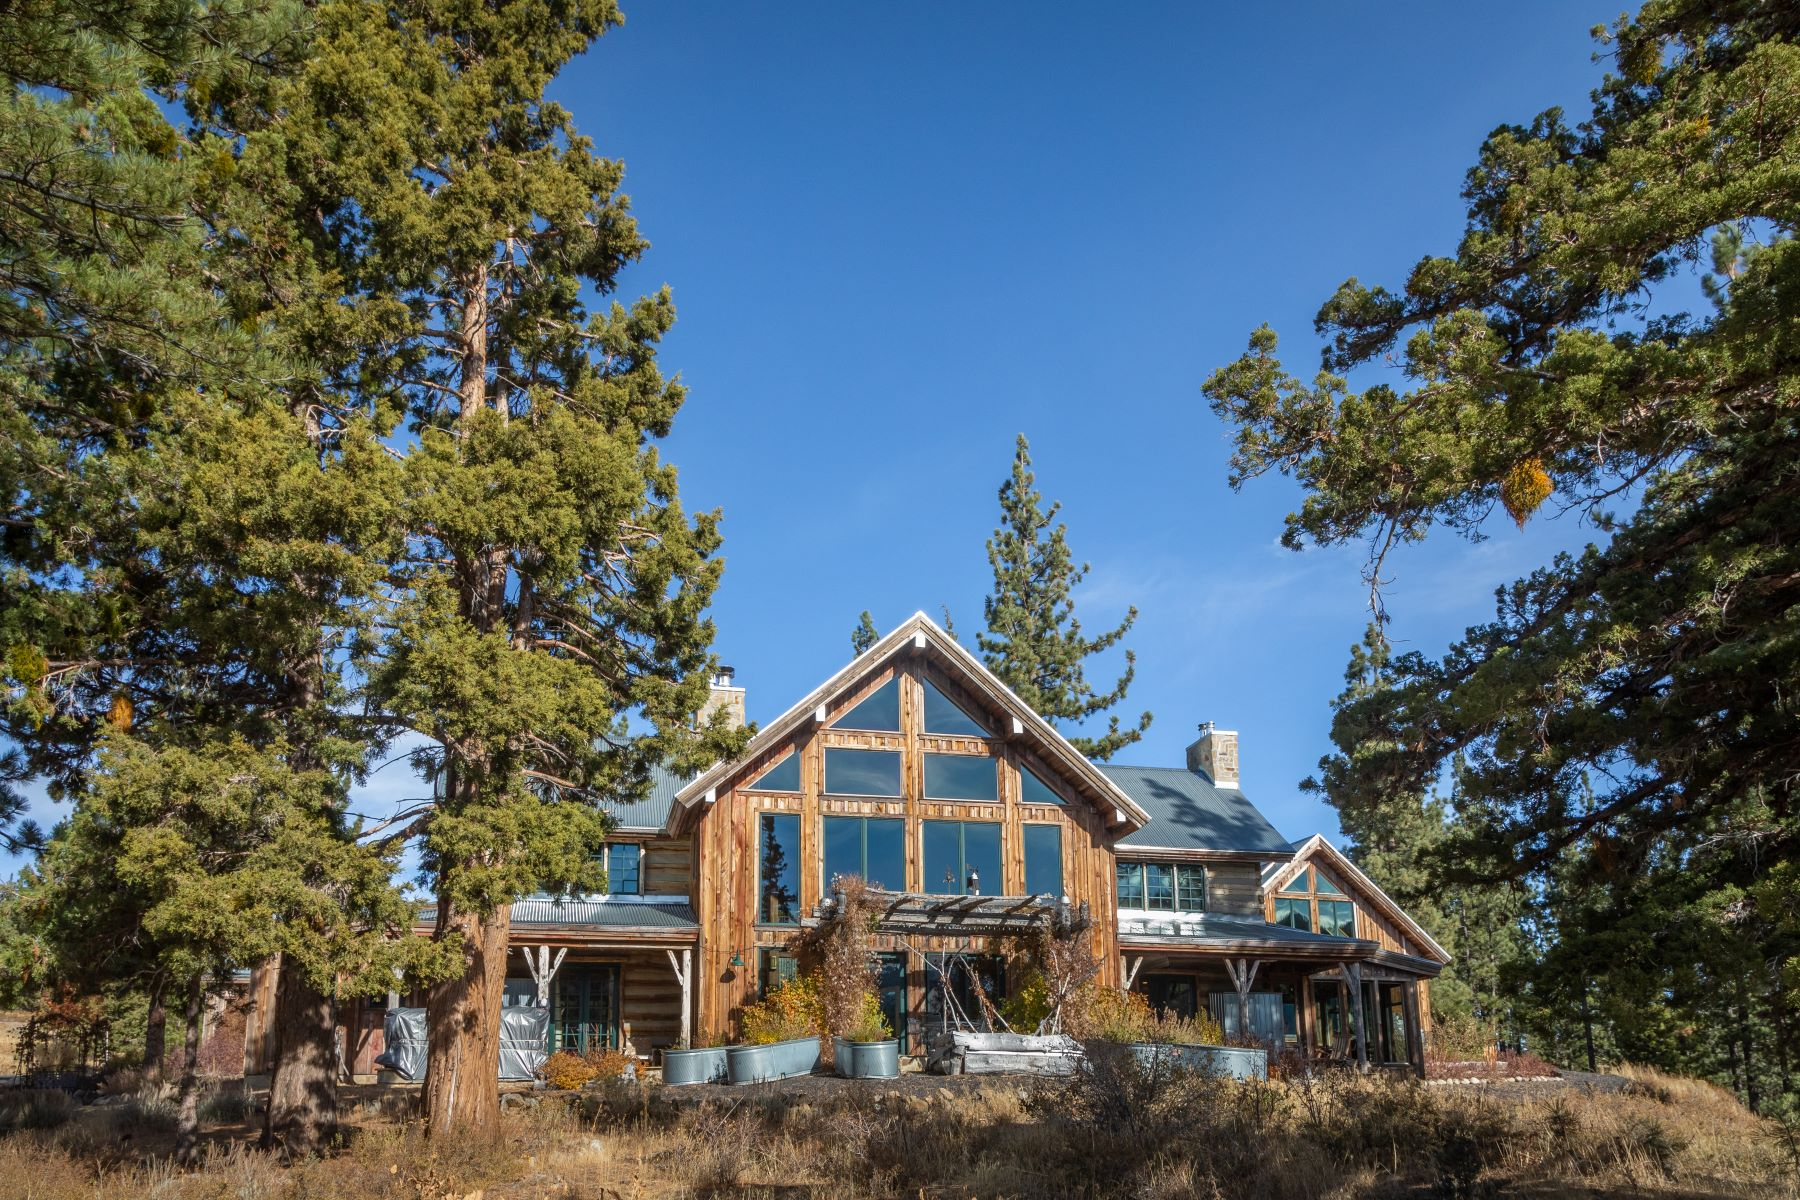 Additional photo for property listing at 19214 La Mirada Rd., Truckee, CA 96161 19214 La Mirada Rd. Truckee, California 96161 United States